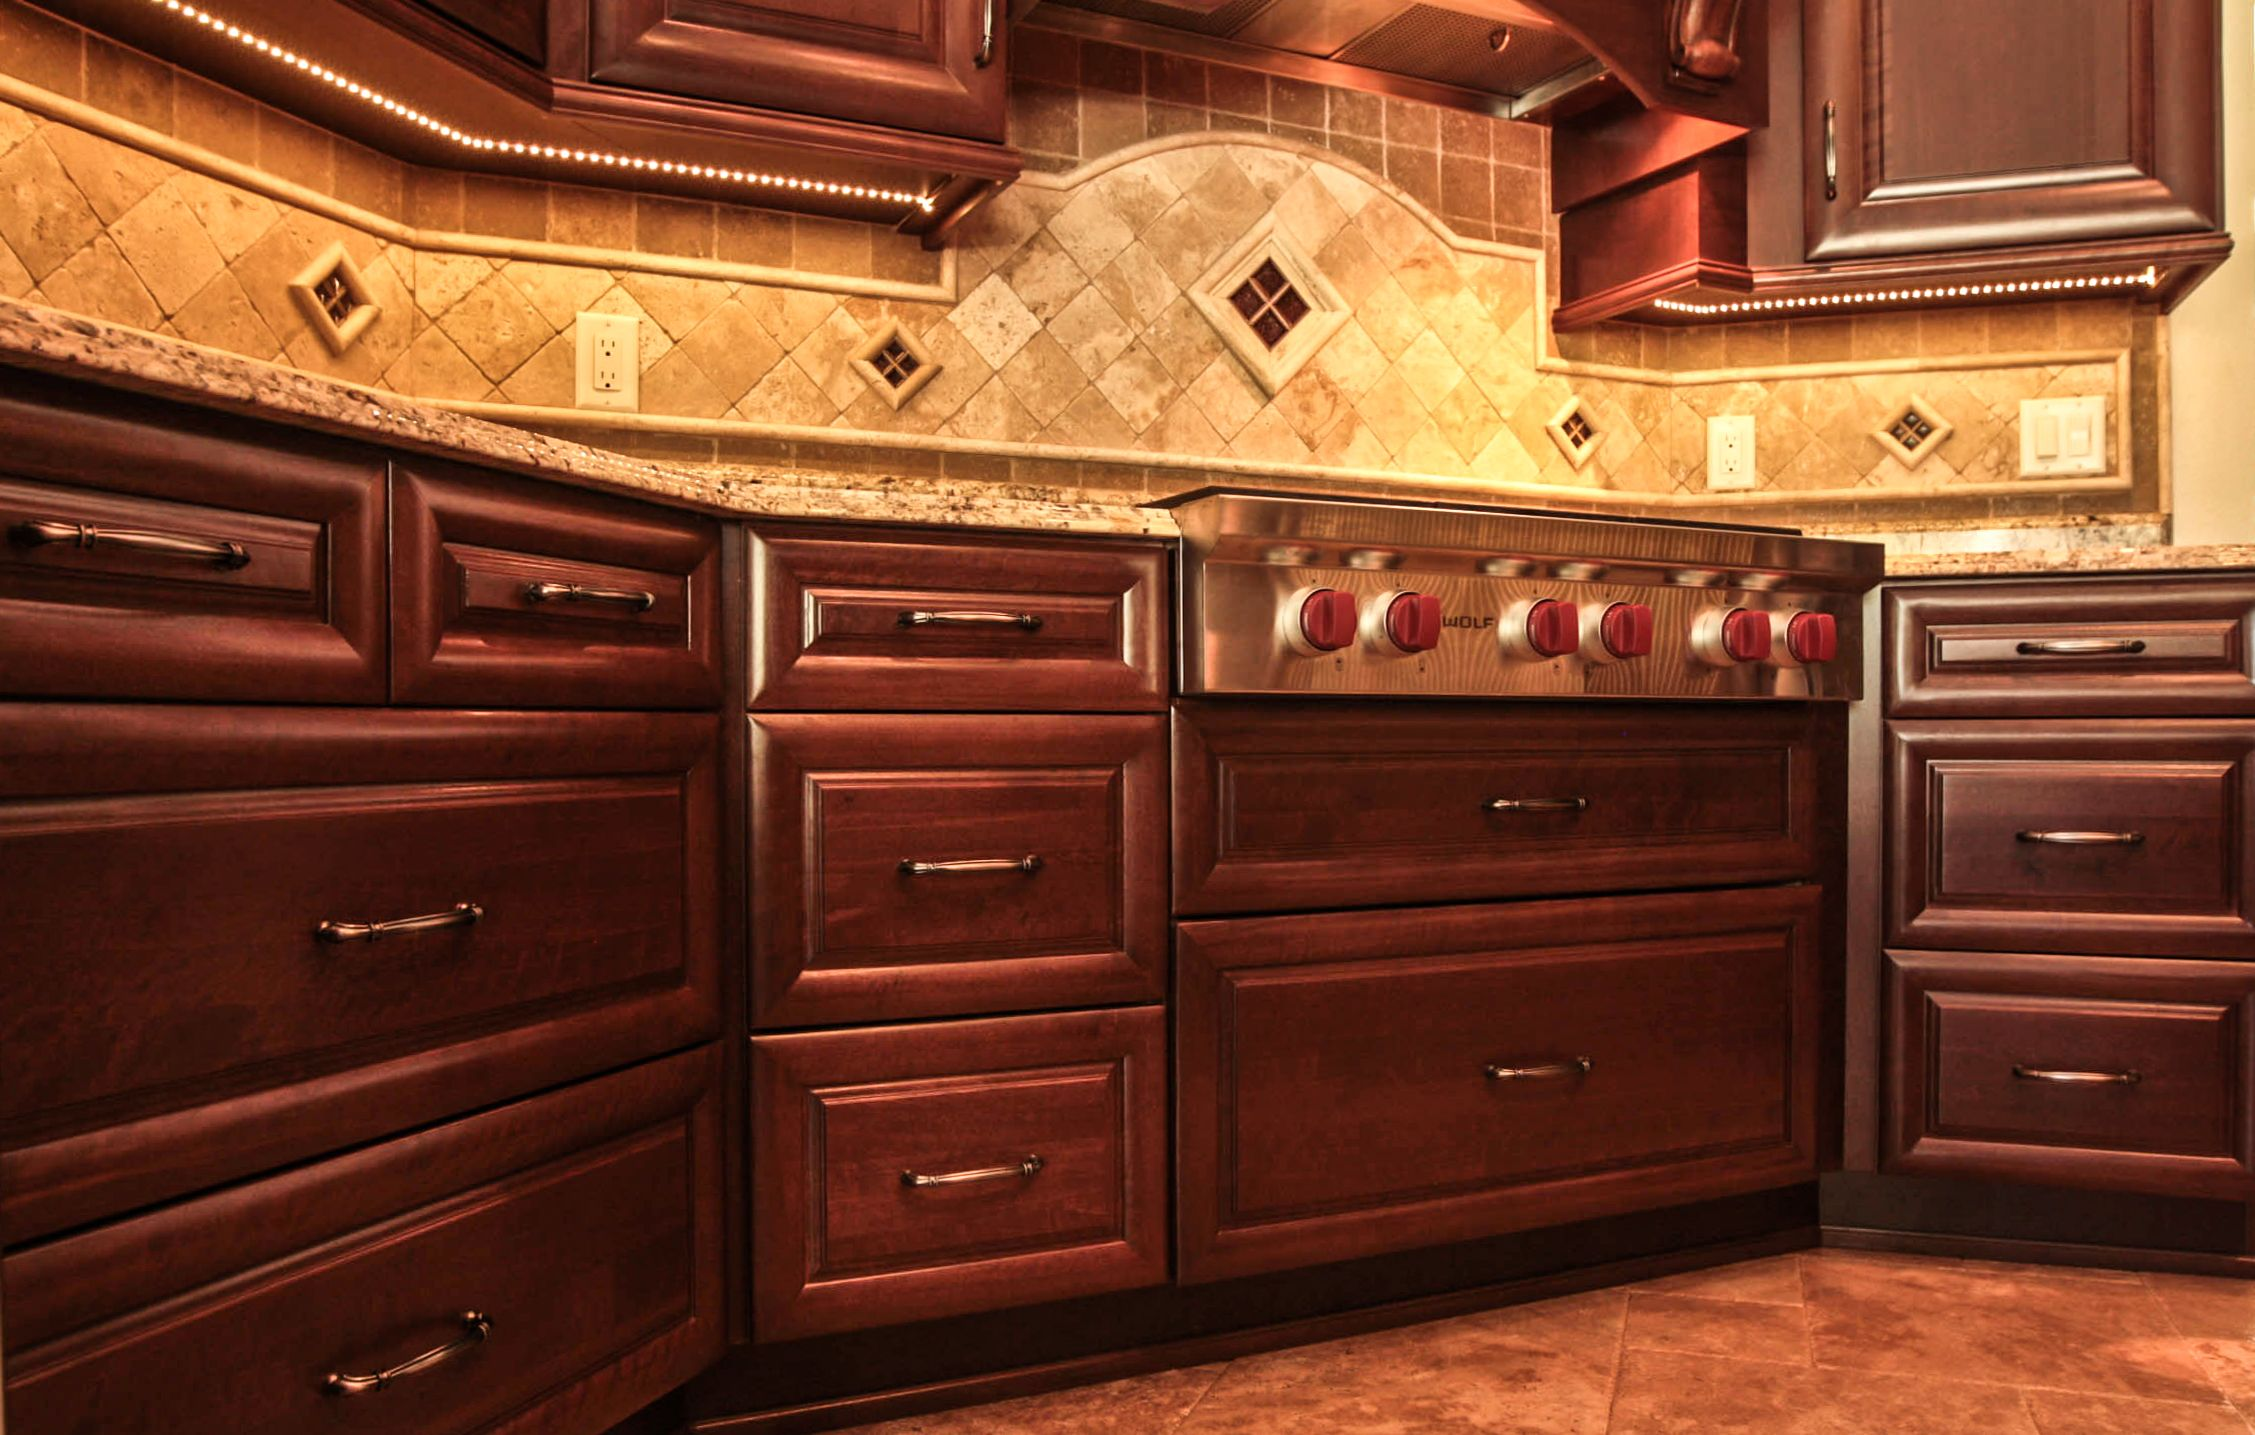 Cabico Custom Cabinetry Traditional Kitchen Design By Zelmar Kitchen Designs Traditional Kitchen Custom Cabinetry Innovation Design